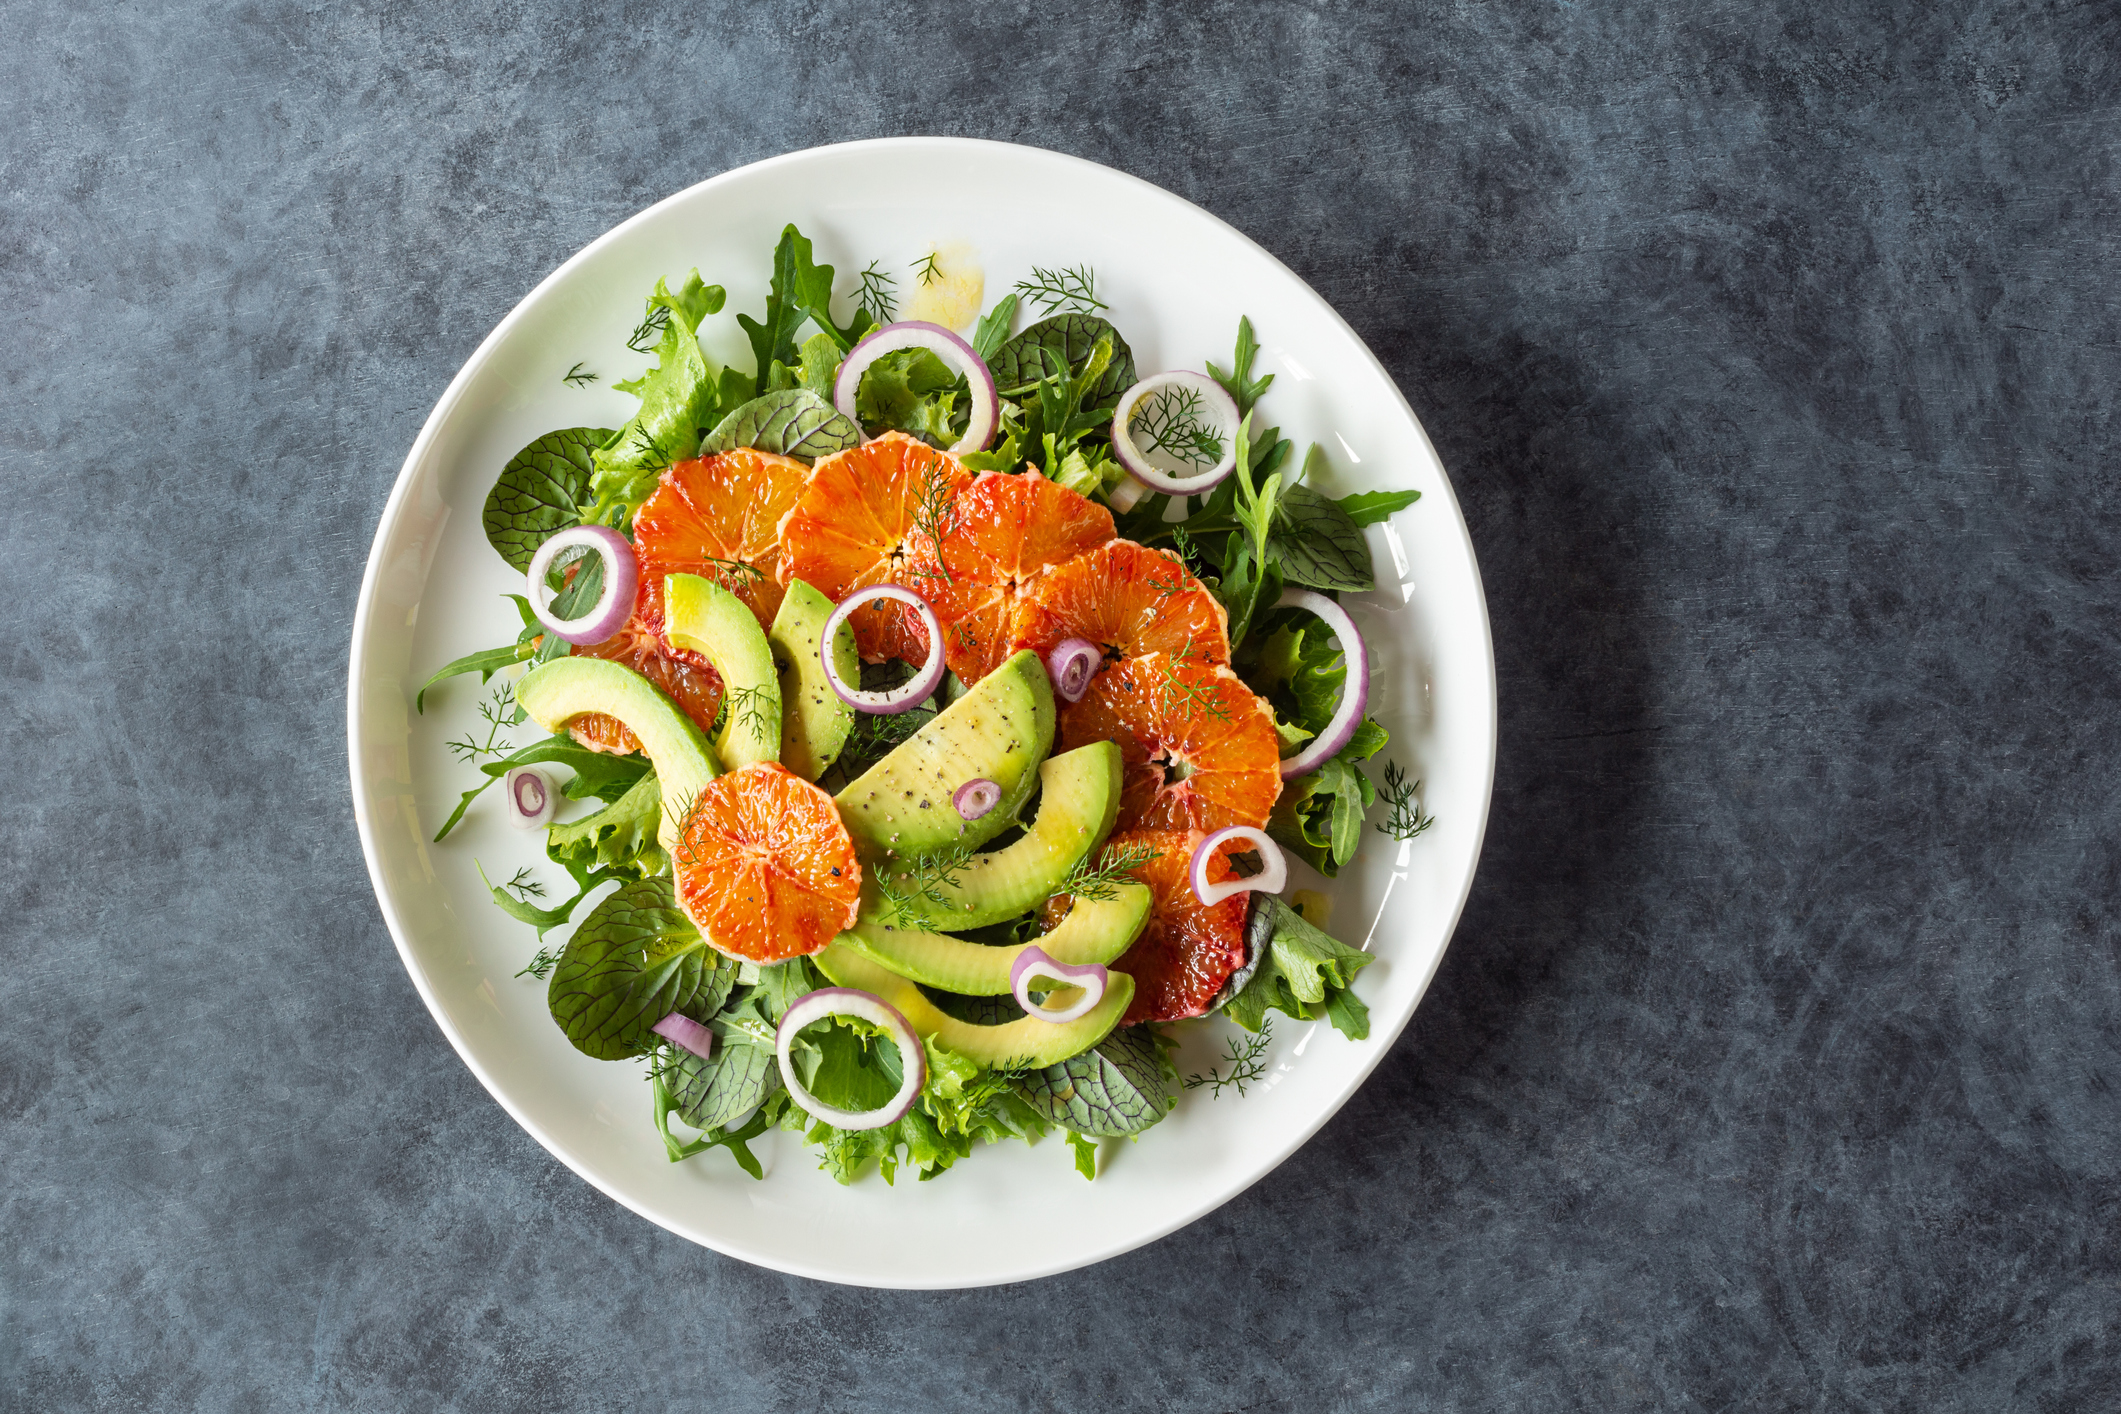 Marge's Avocado Citrus Salad